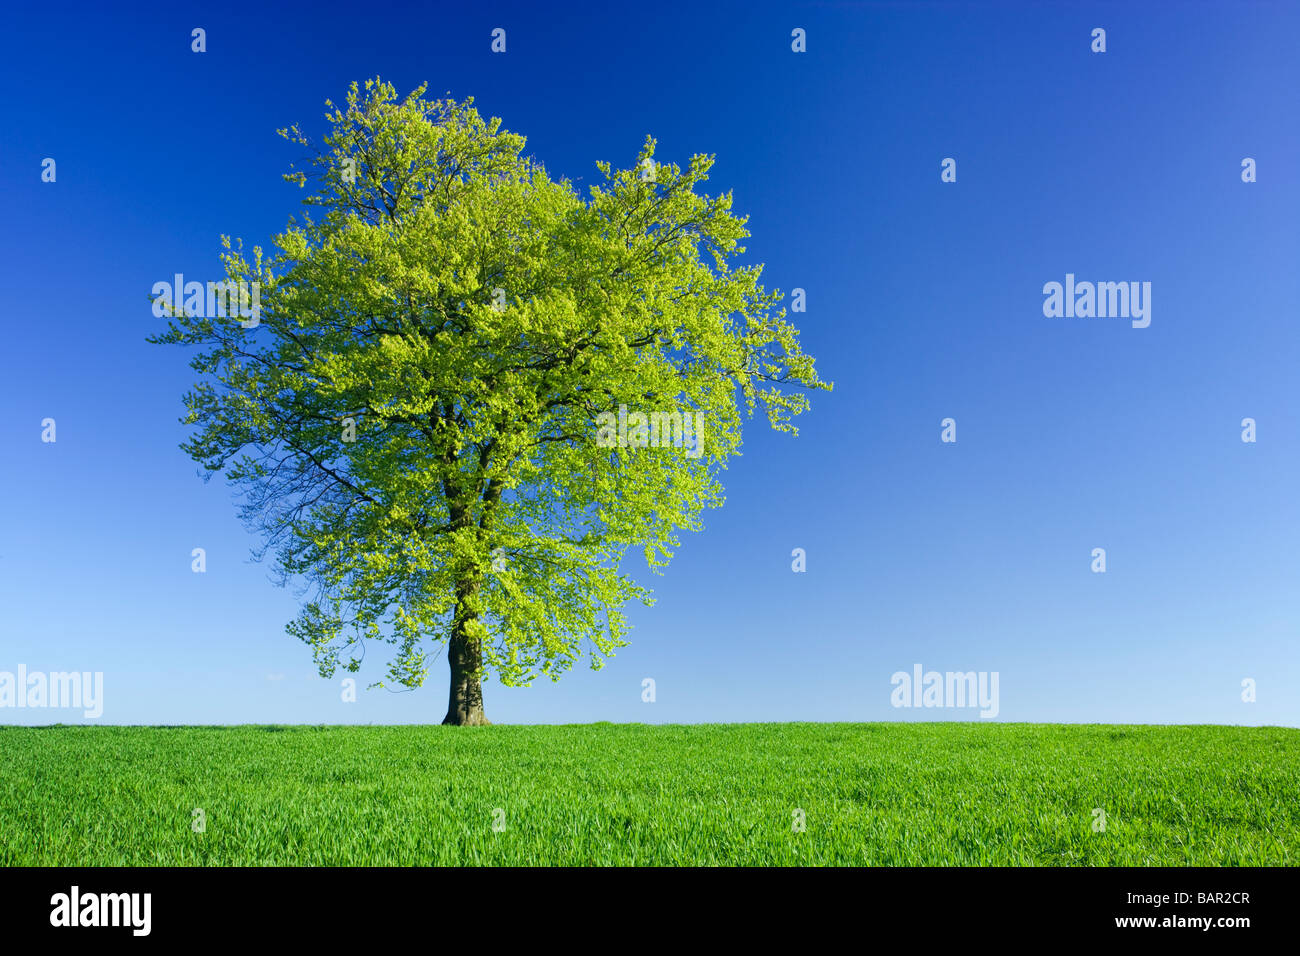 Single beech tree in field of young crop. Surrey, UK. - Stock Image